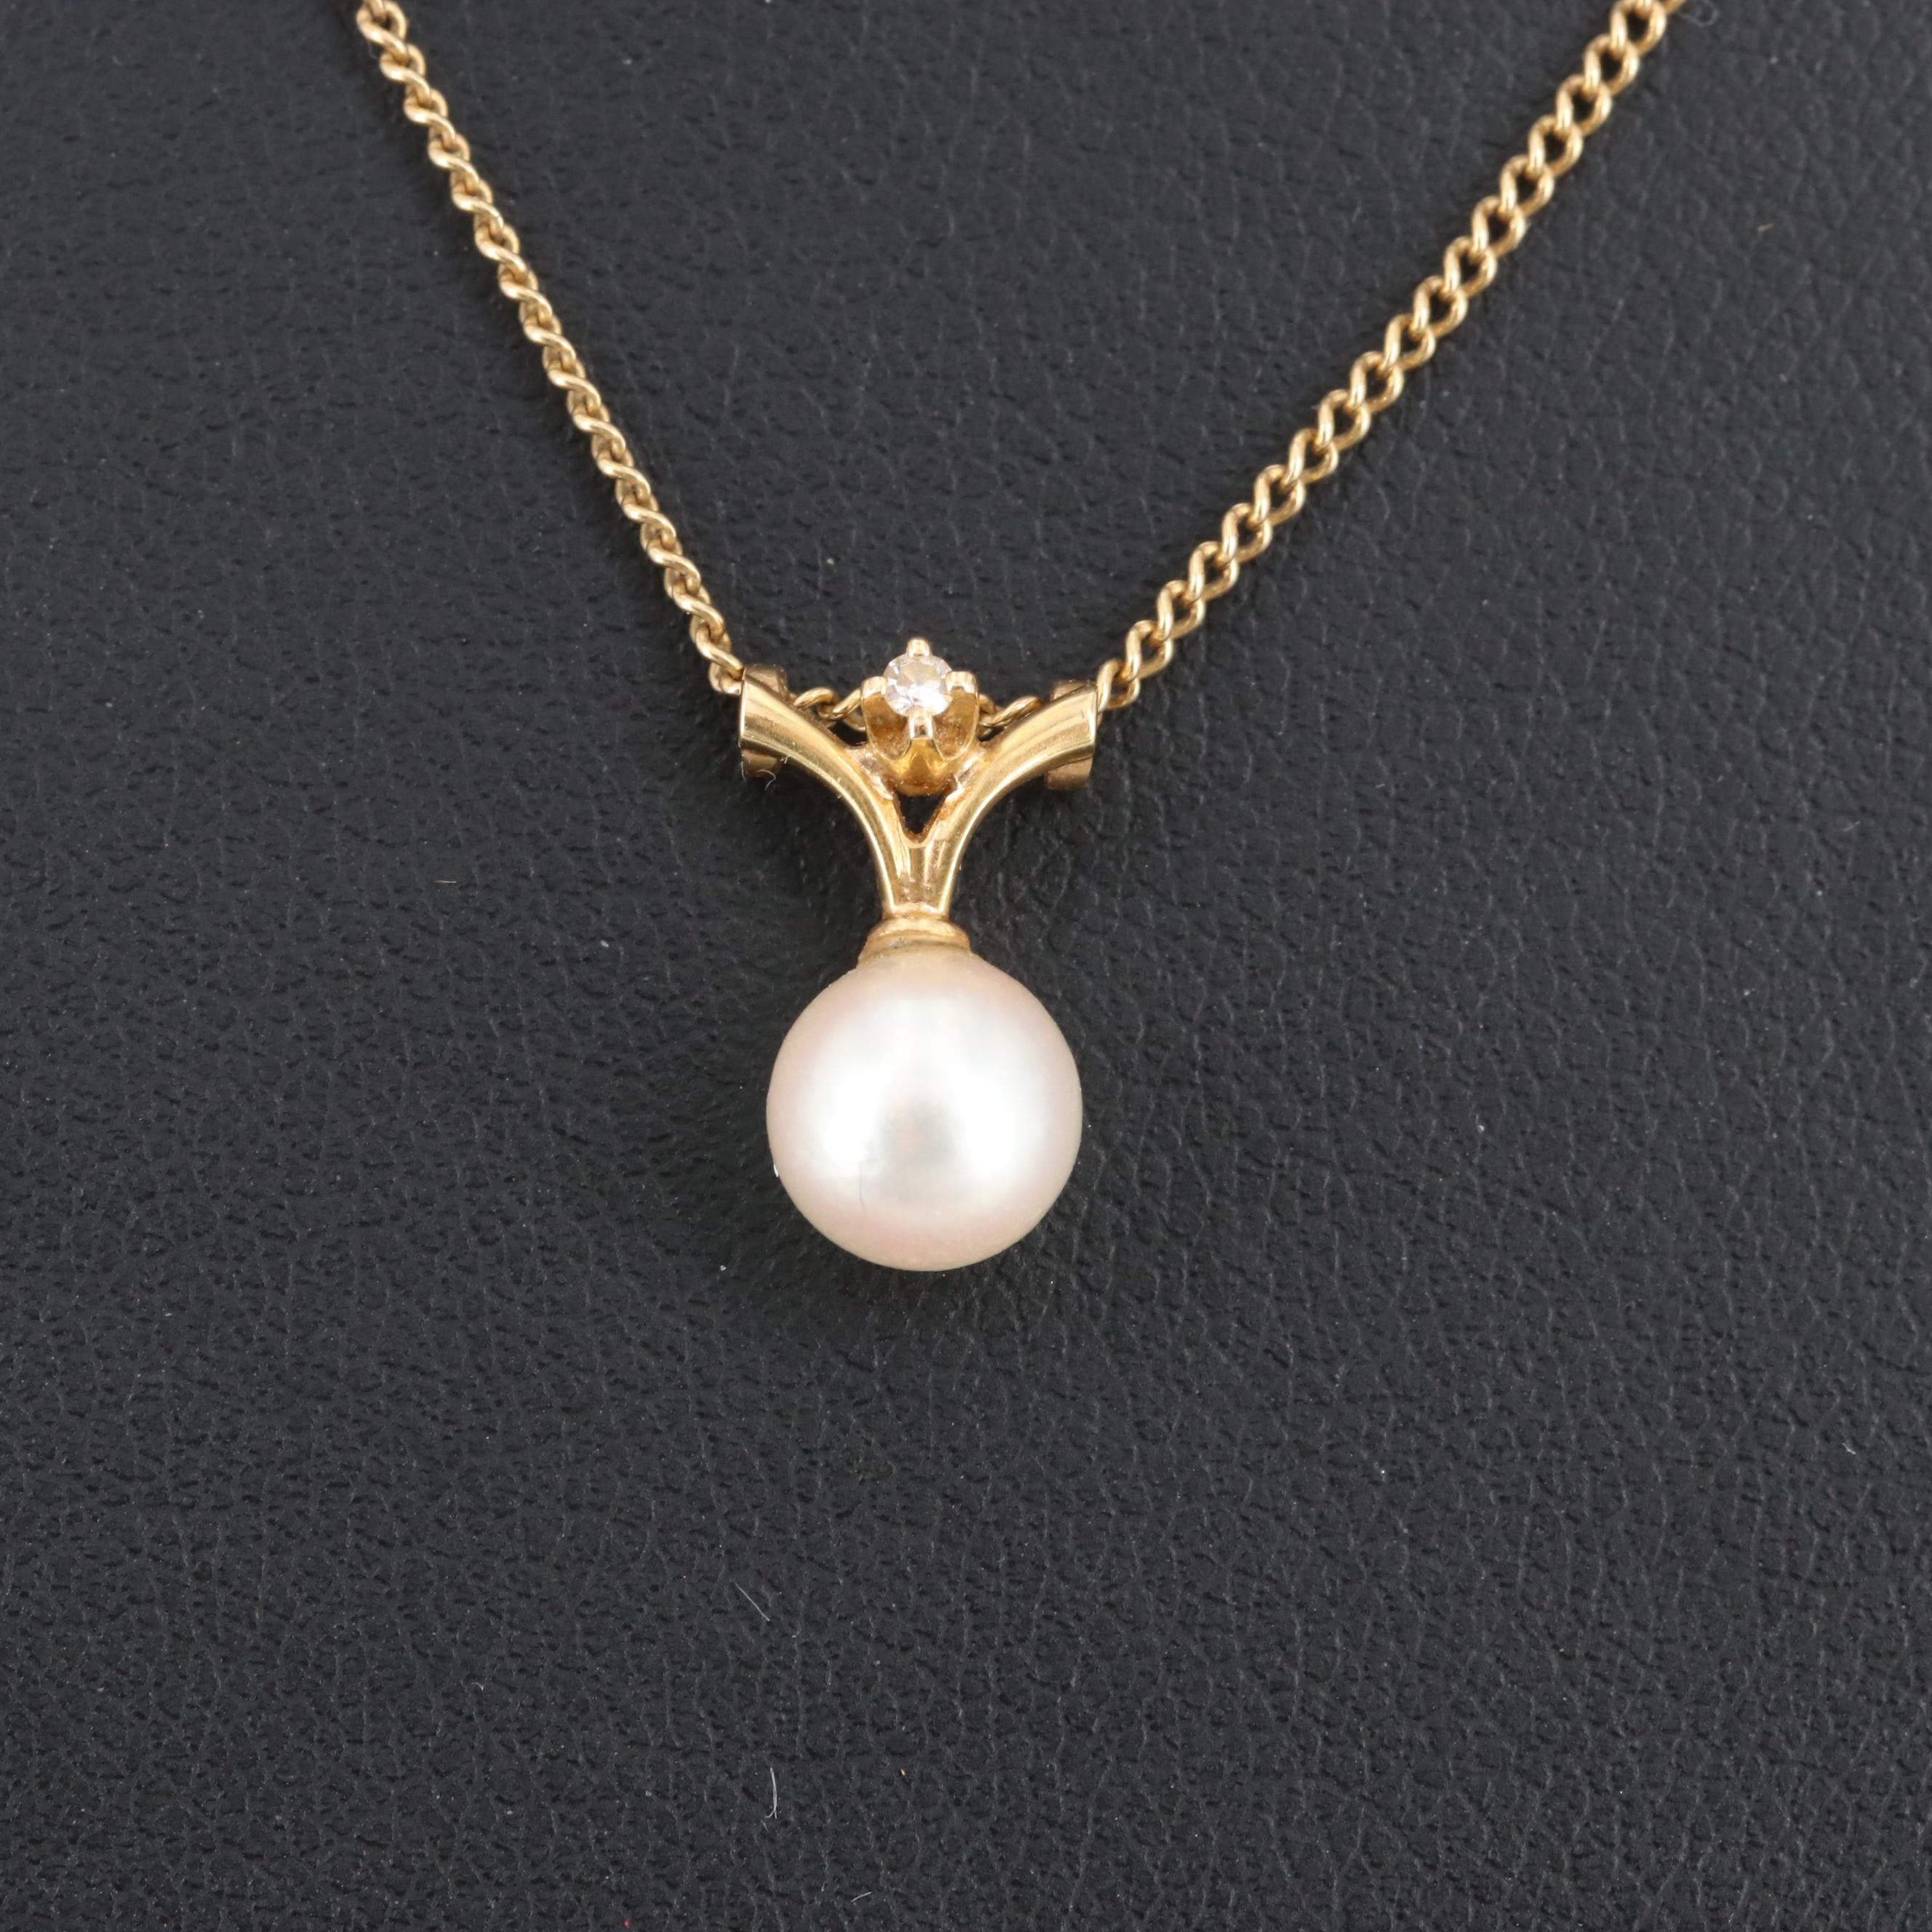 14K and 18K Yellow Gold Cultured Pearl and Diamond Necklace